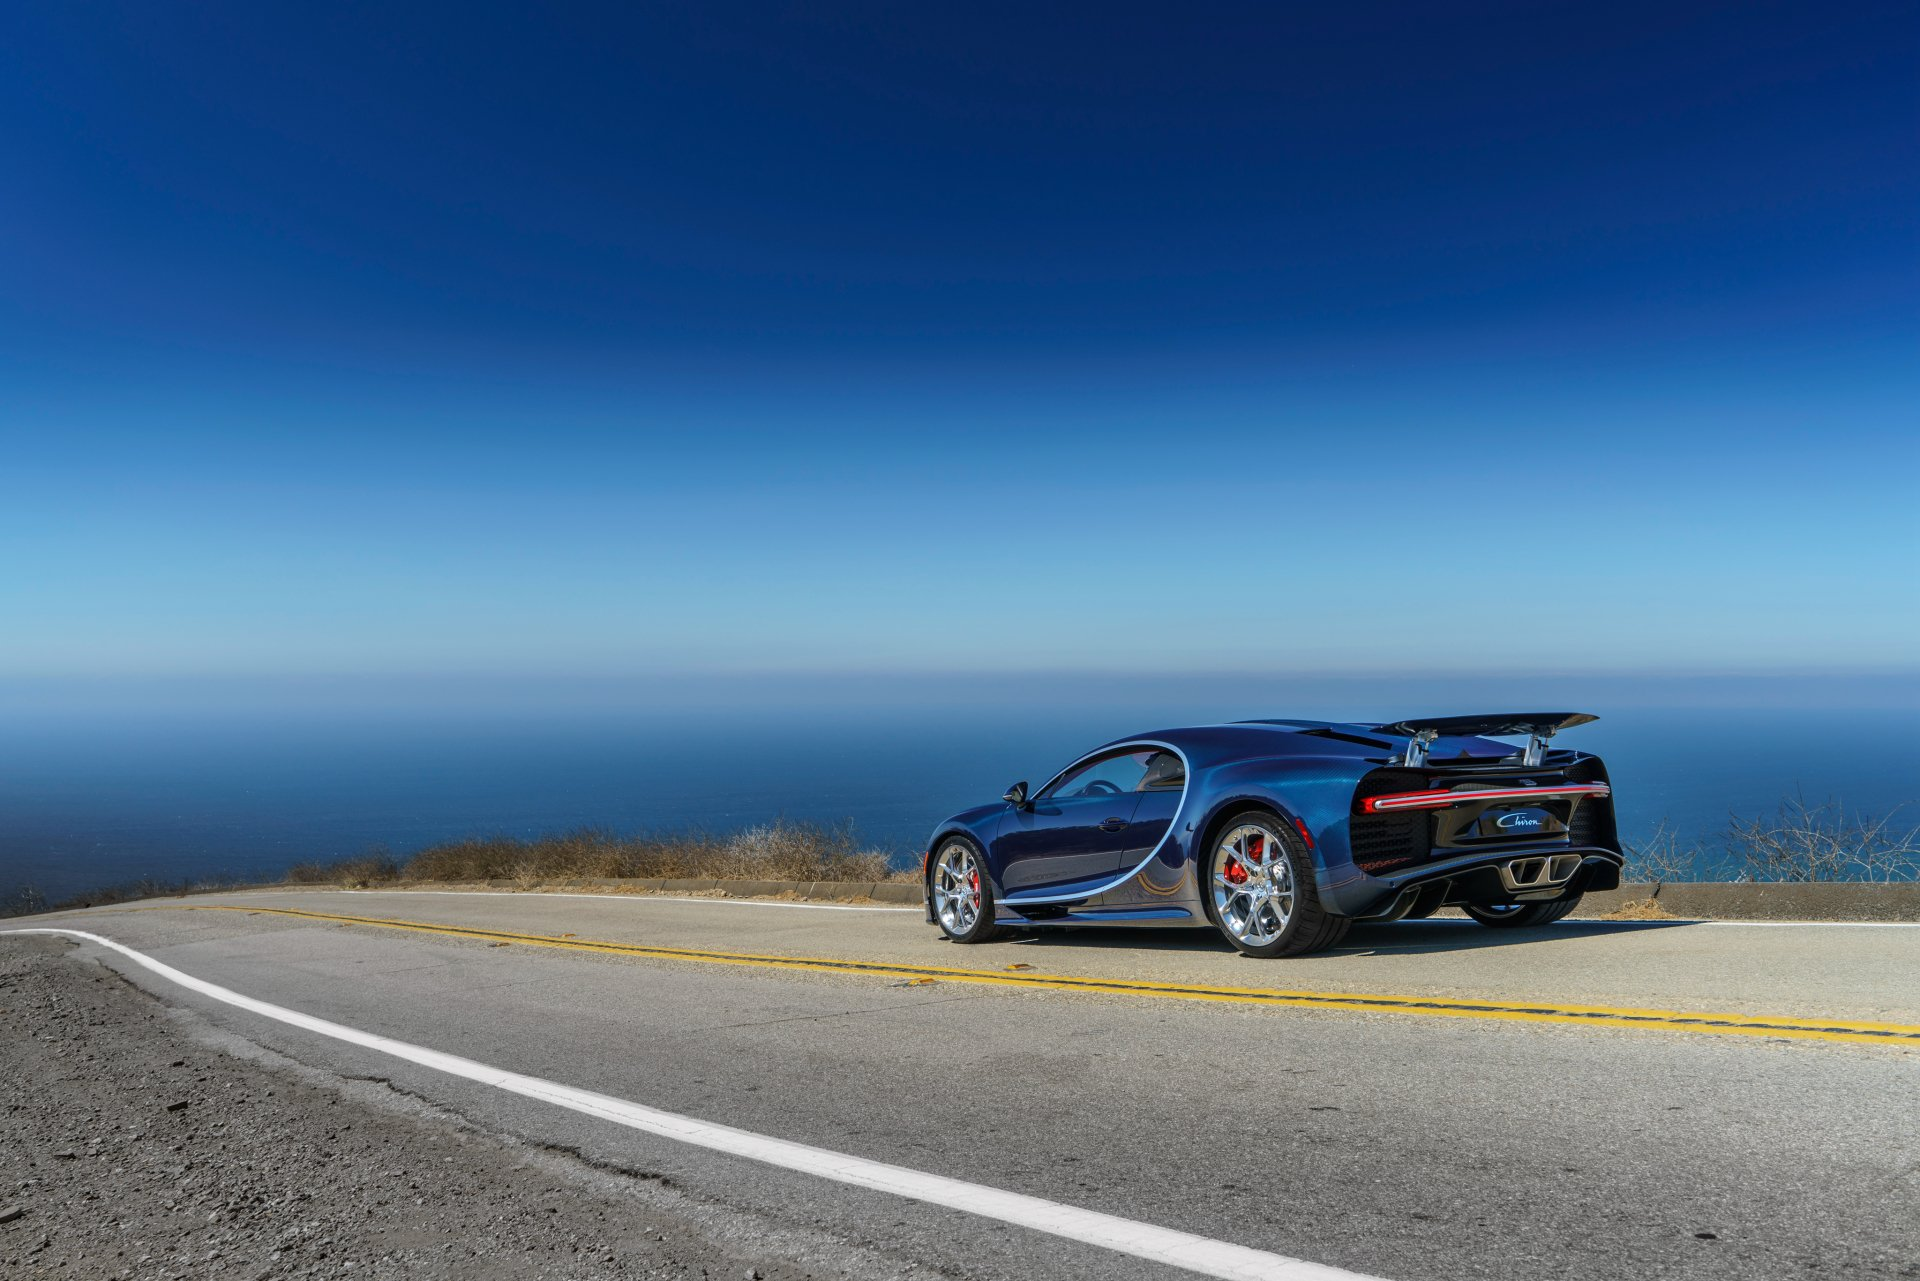 Vehicles - Bugatti Chiron  Bugatti Blue Car Car Vehicle Supercar Sport Car Wallpaper